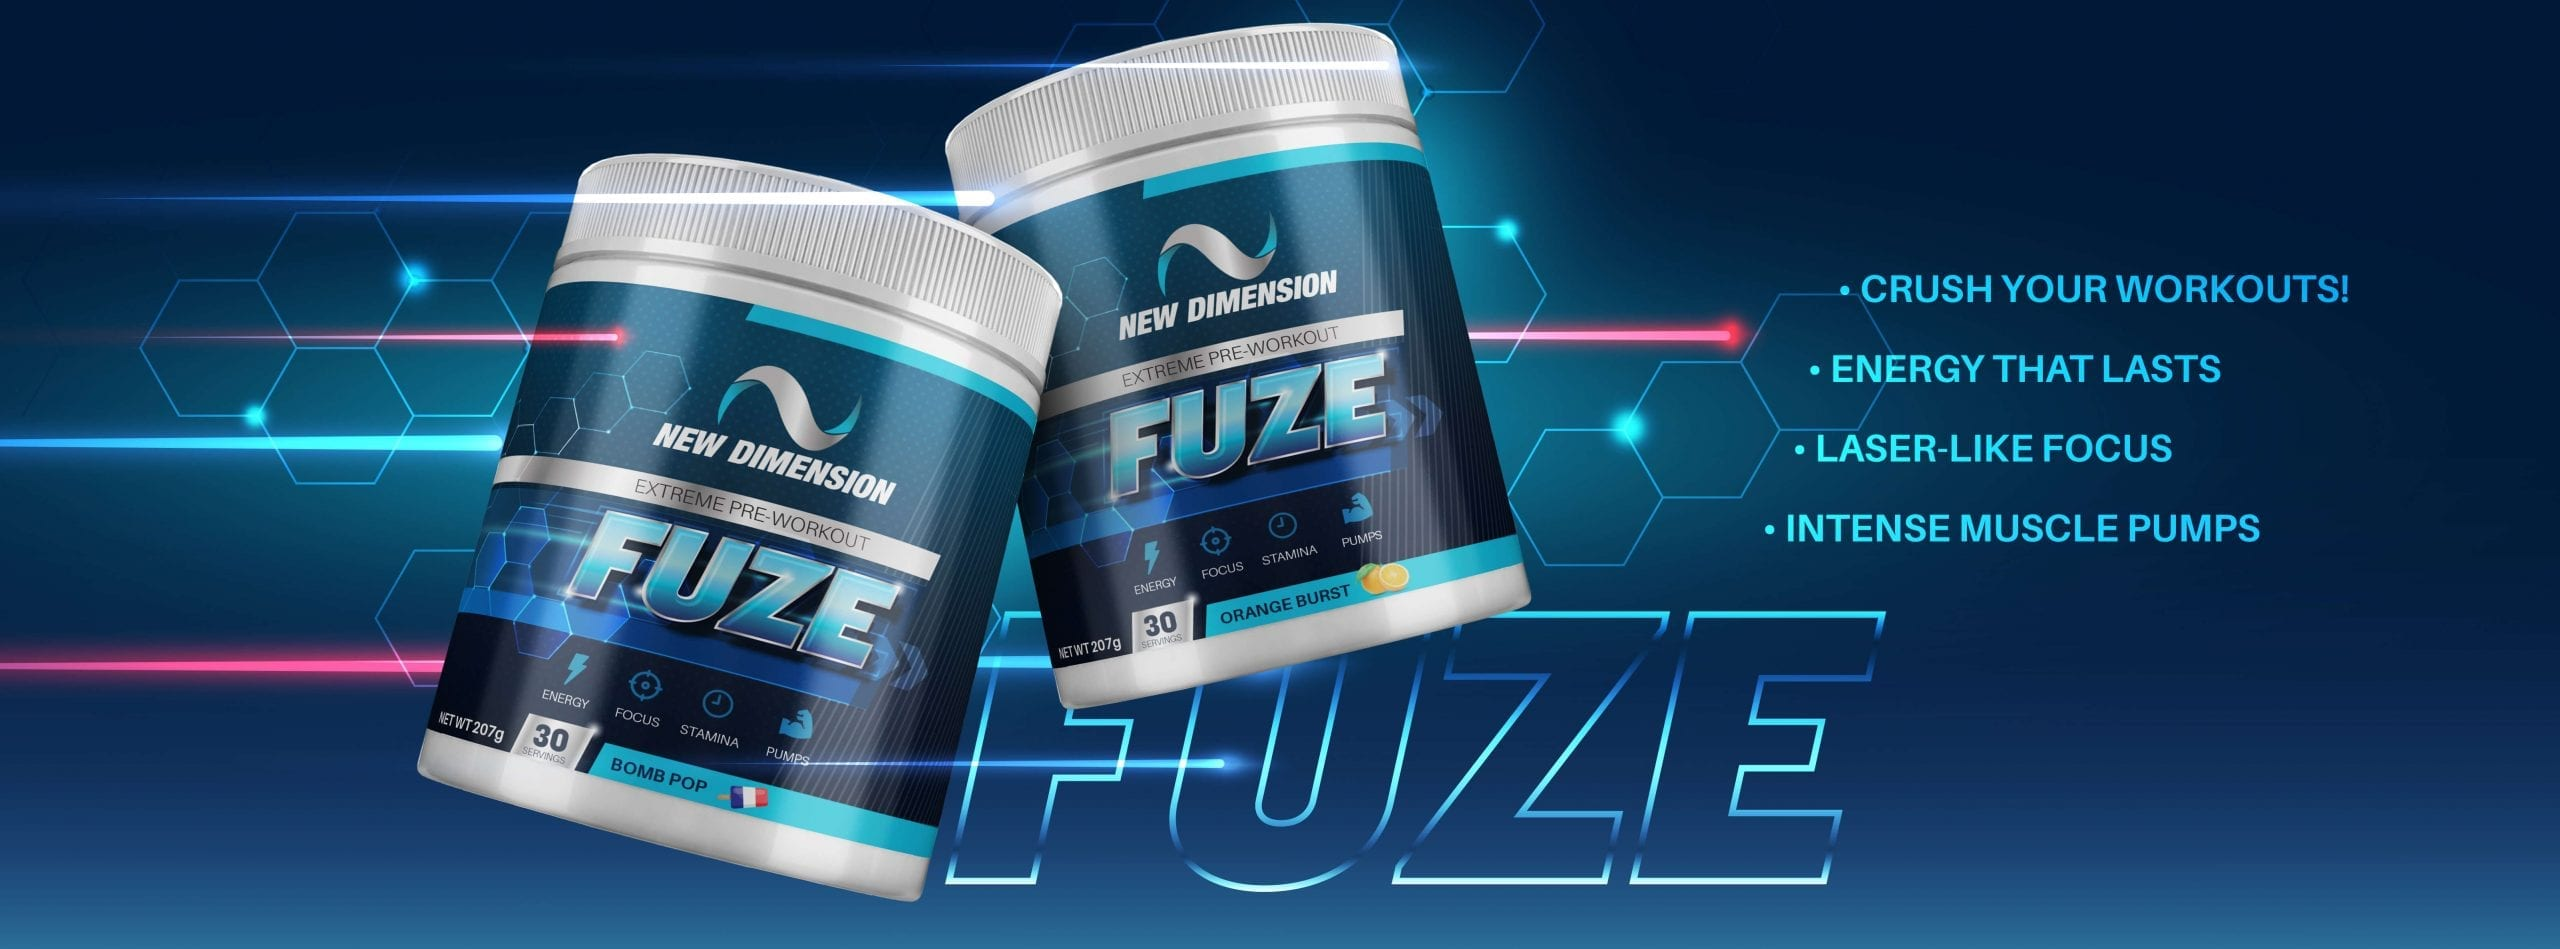 FUZE Pre Workout In-Page In Stock